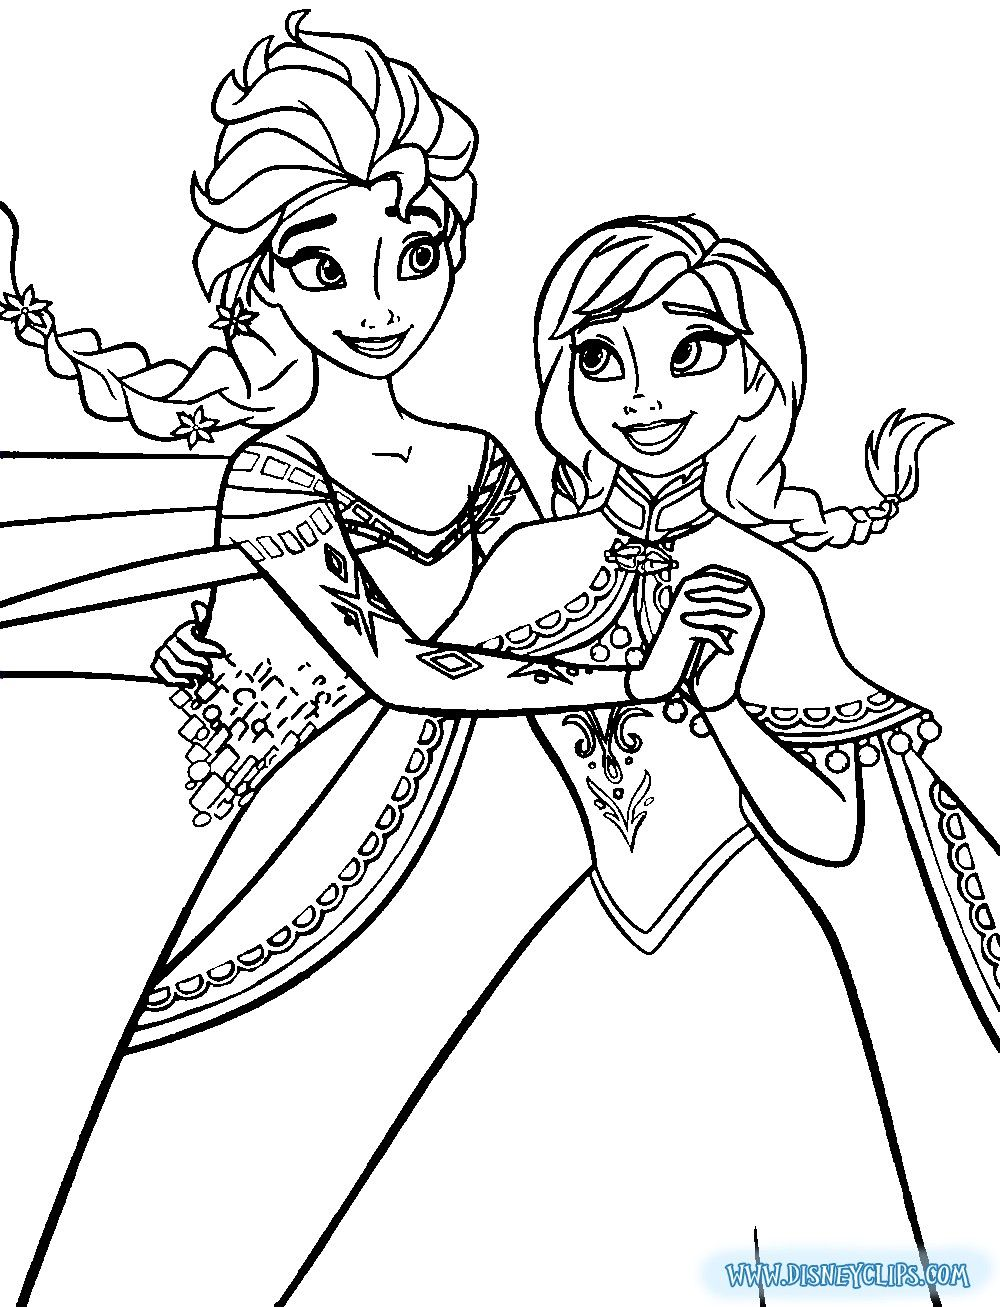 Disney Princess Anna Coloring Pages Through The Thousand Pictures On The Web Regarding Disney Princess Anna Color Ausmalbild Eiskonigin Ausmalbilder Ausmalen